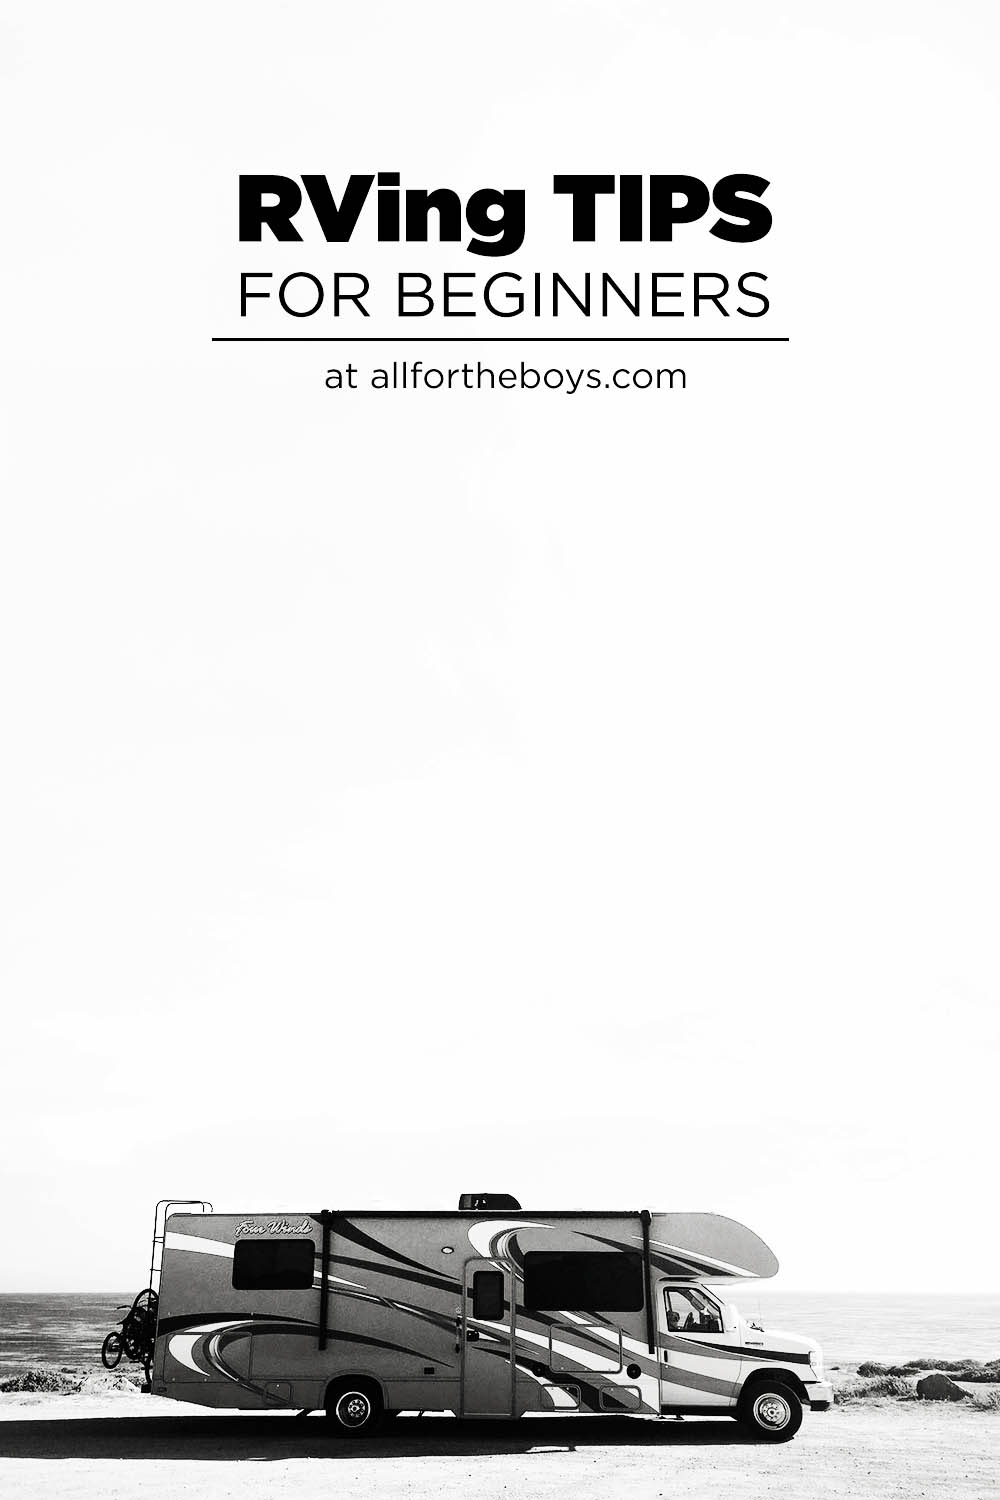 RVing tips from beginners